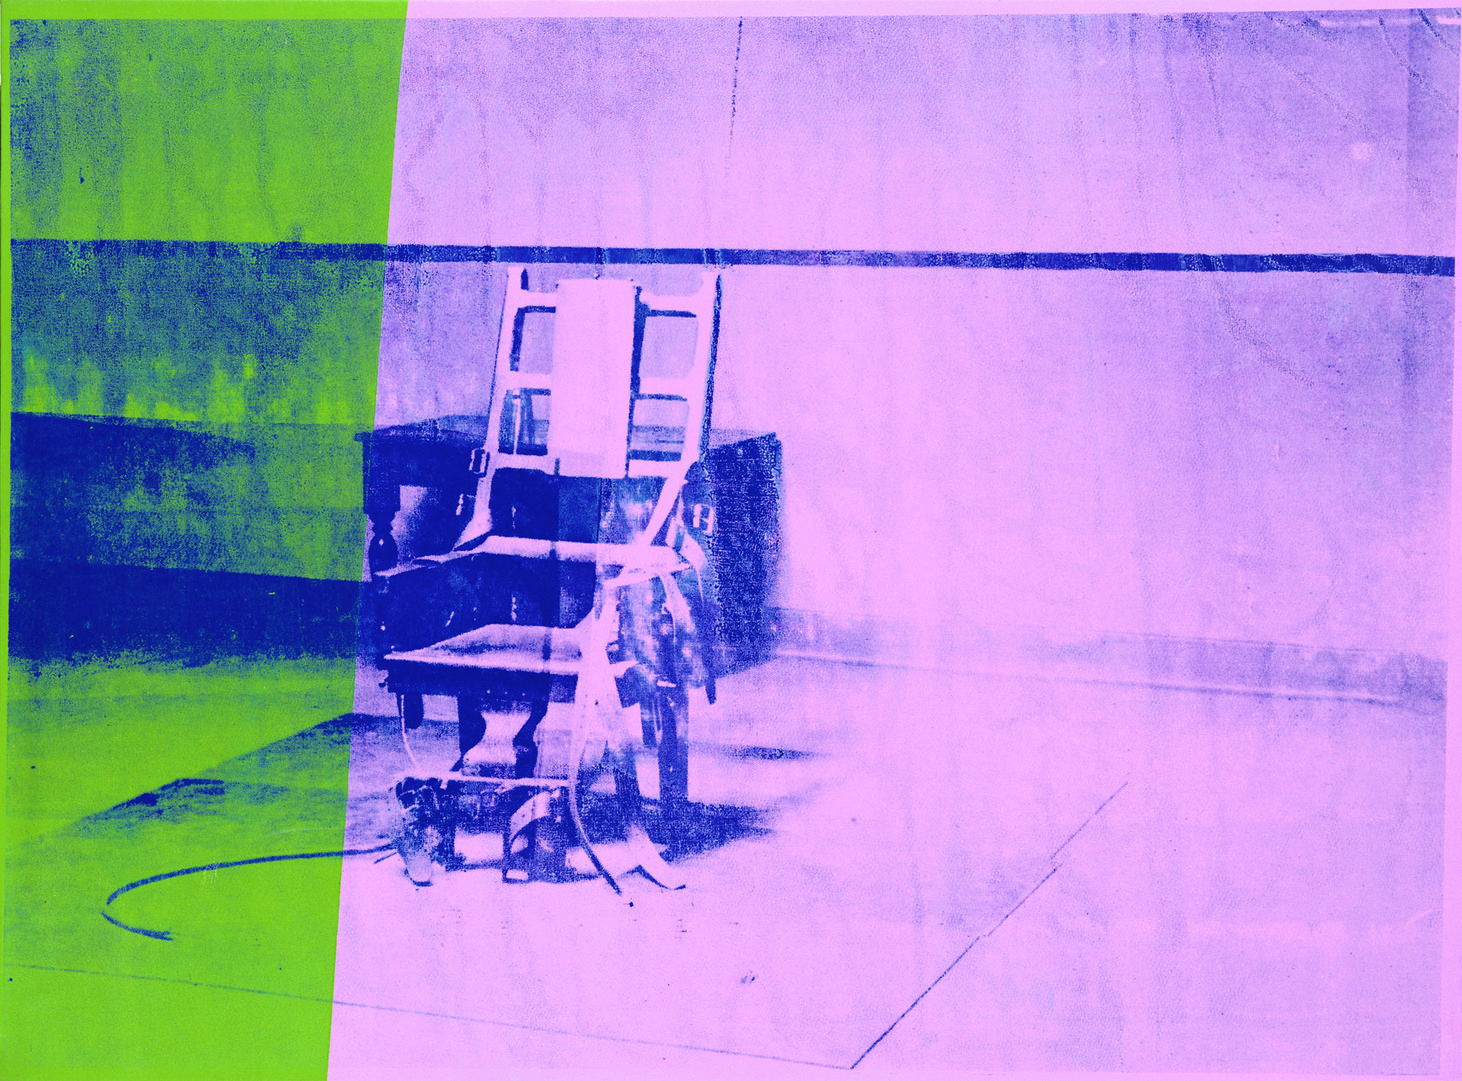 Electric chair andy warhol - Andy Warhol Big Electric Chair Disturbing Pieces Of Art From History